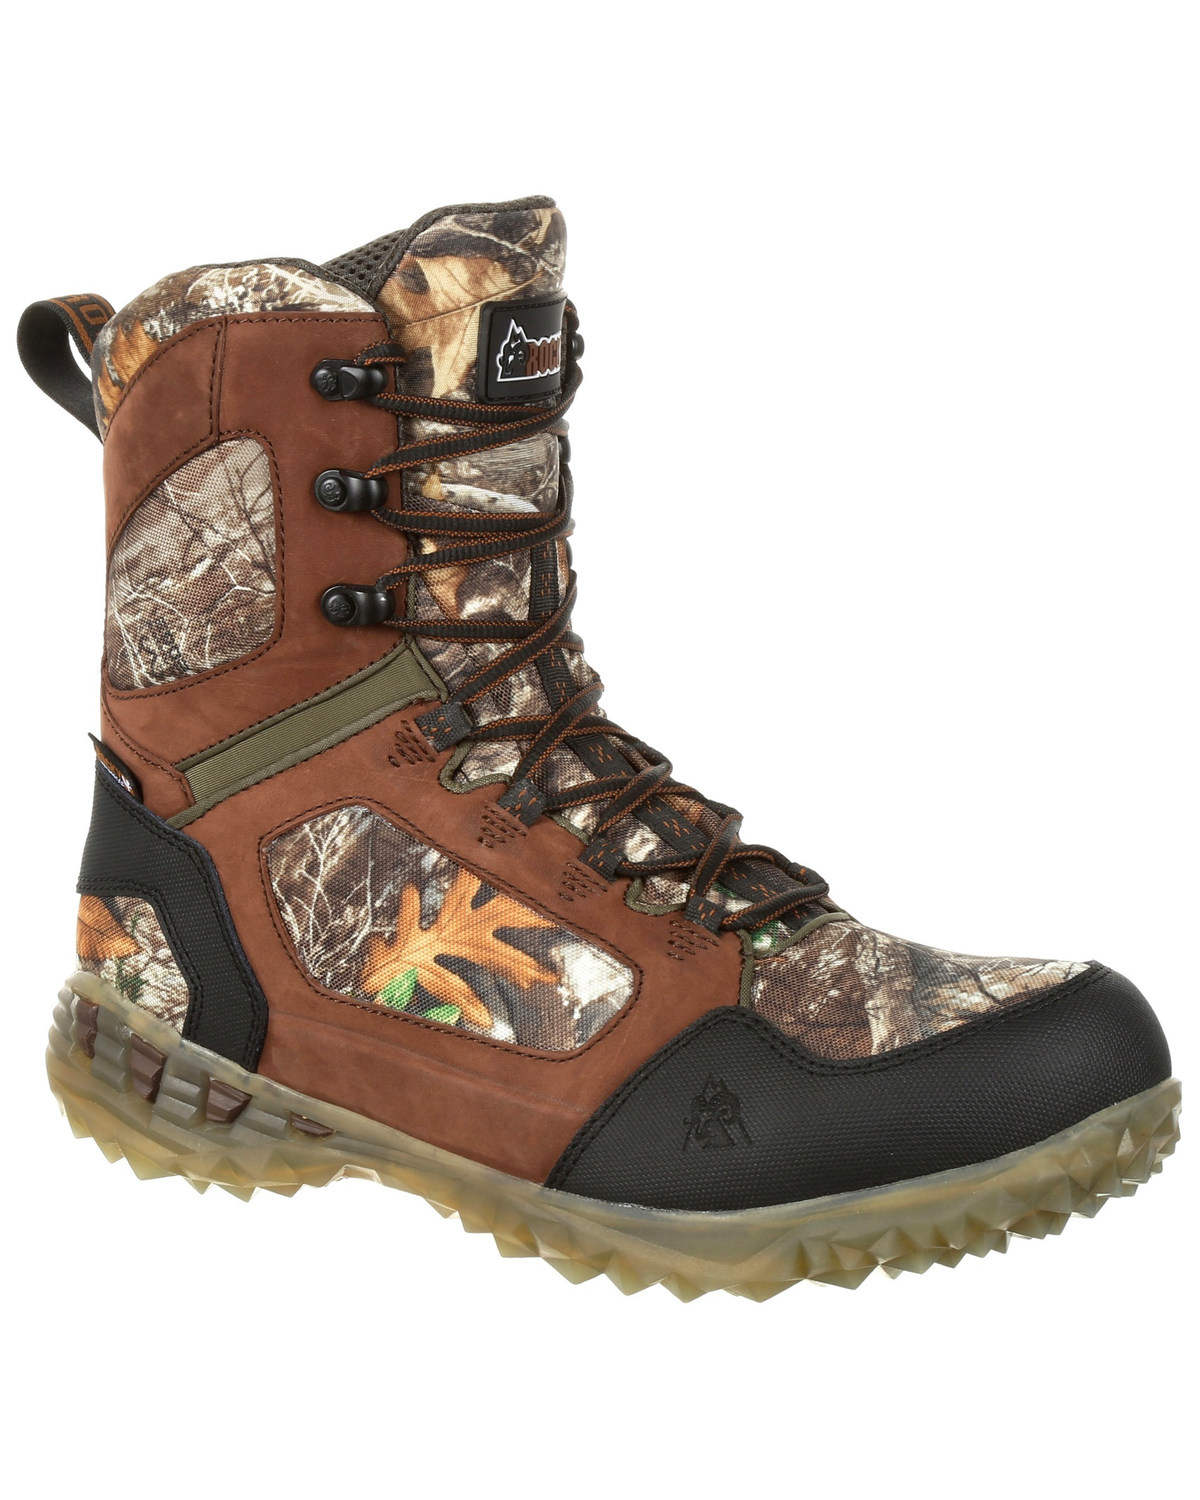 6dbf203f679 Rocky Men's Broadhead EX Insulated Waterproof Outdoor Boots - Round Toe